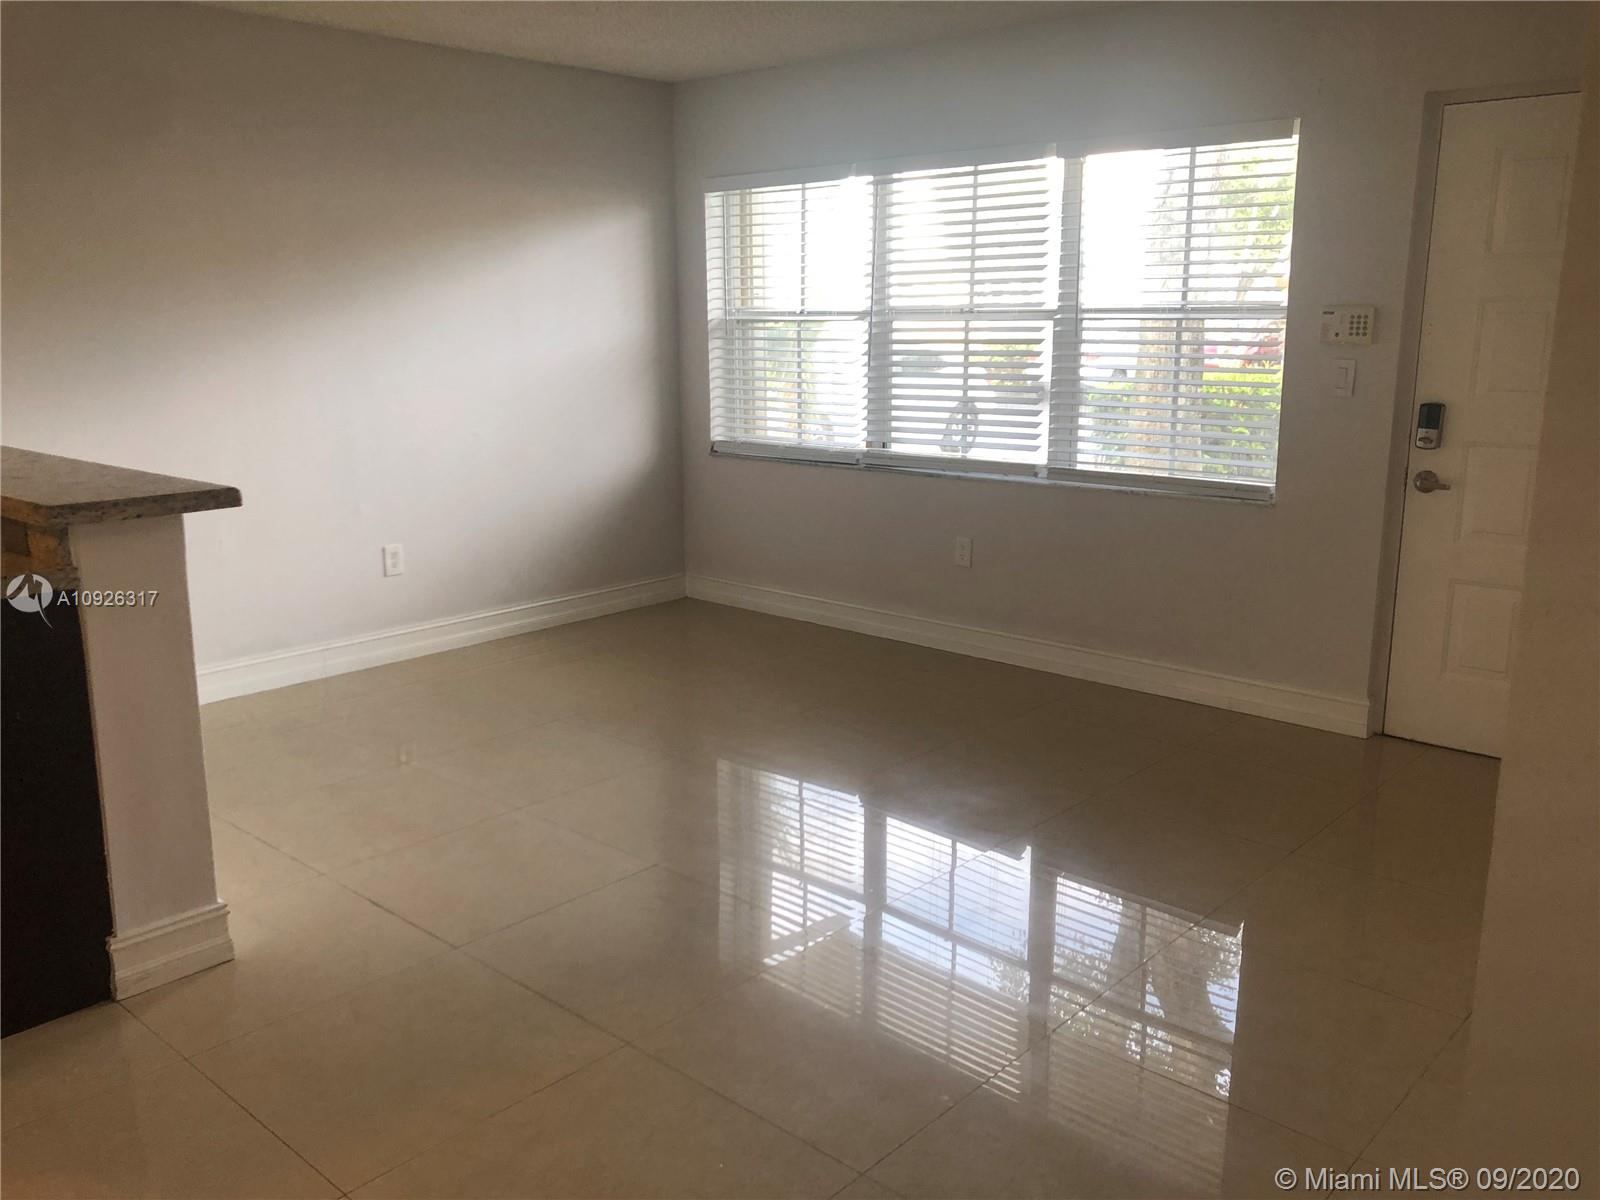 1 BEDROOM 1 BATH READY TO BE MOVED IN. HUGE WALK IN CLOSET, AND FULL WASHER AND DRYER IN UNIT. LOCATED INSIDE A GATED COMMUNITY WITH COMMUNITY POOL, KIDDIE POOL, AND PLAYGROUND. COMMUNITY LOCATED NEAR BUS STOP, AND MANY SHOPPING PLAZAS.